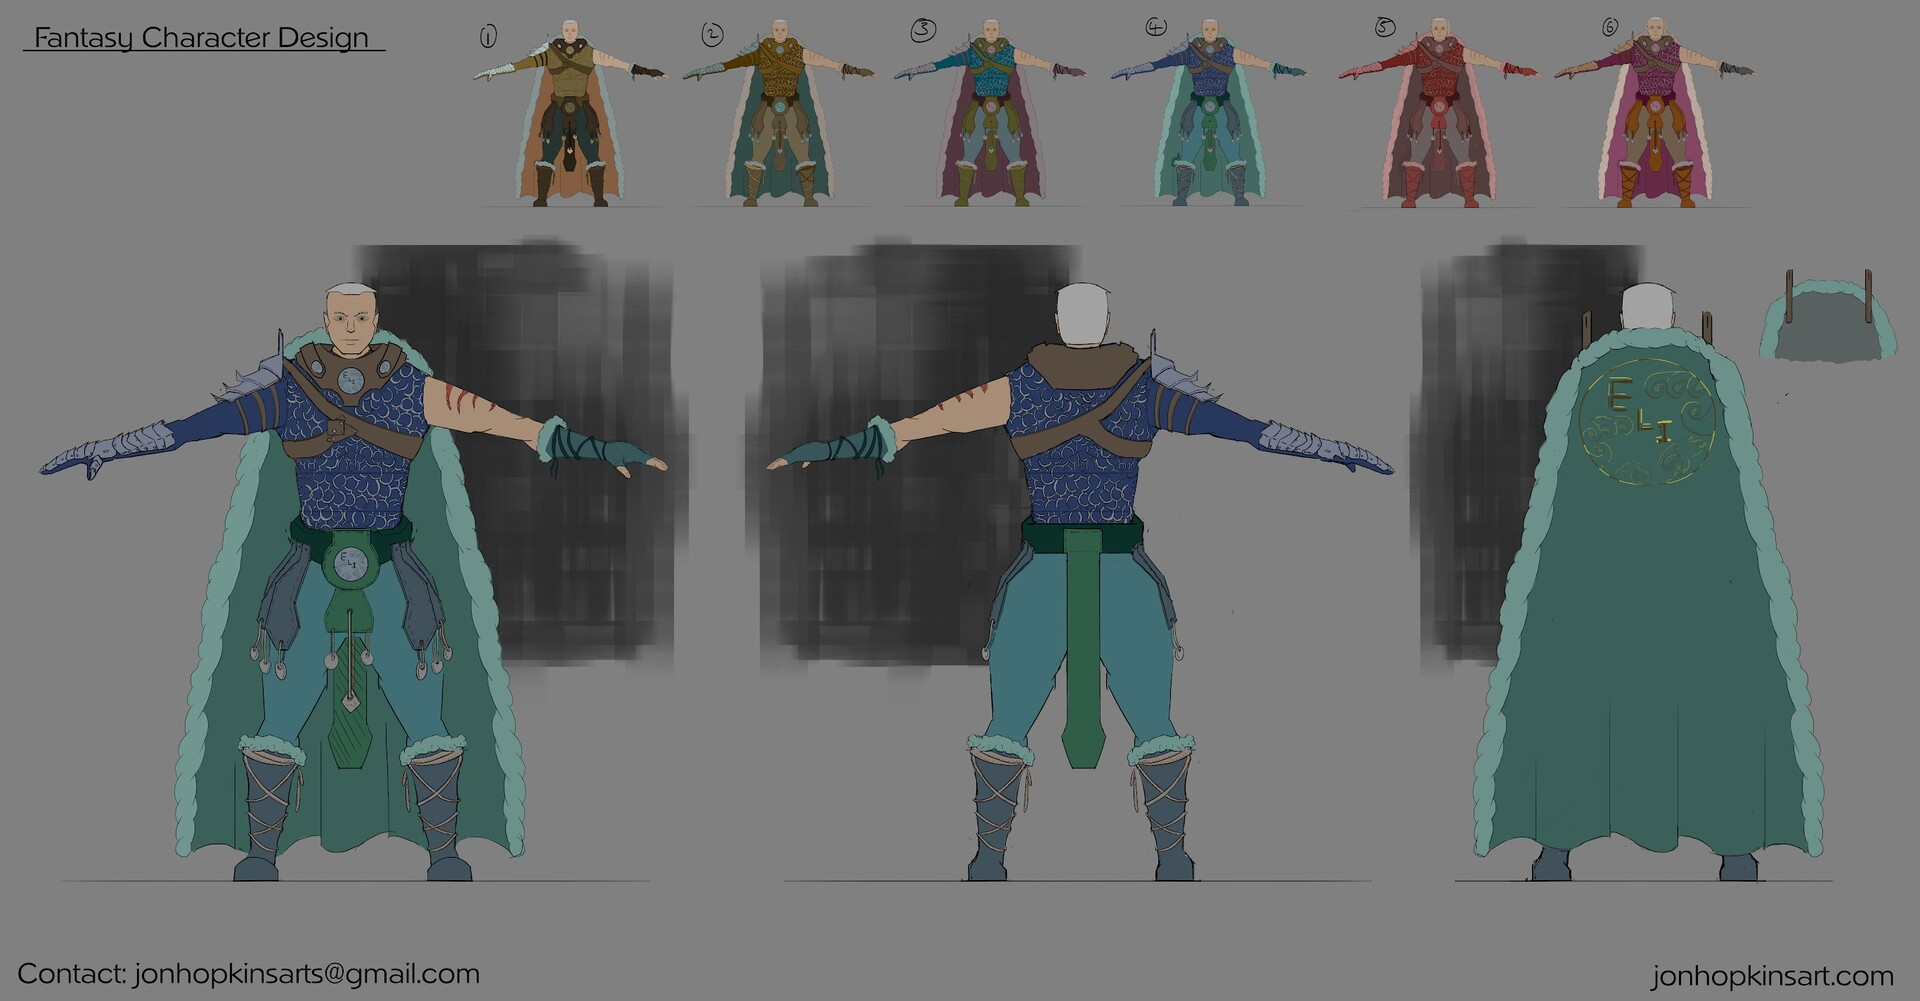 Fantasy Character concept design with colour variations.